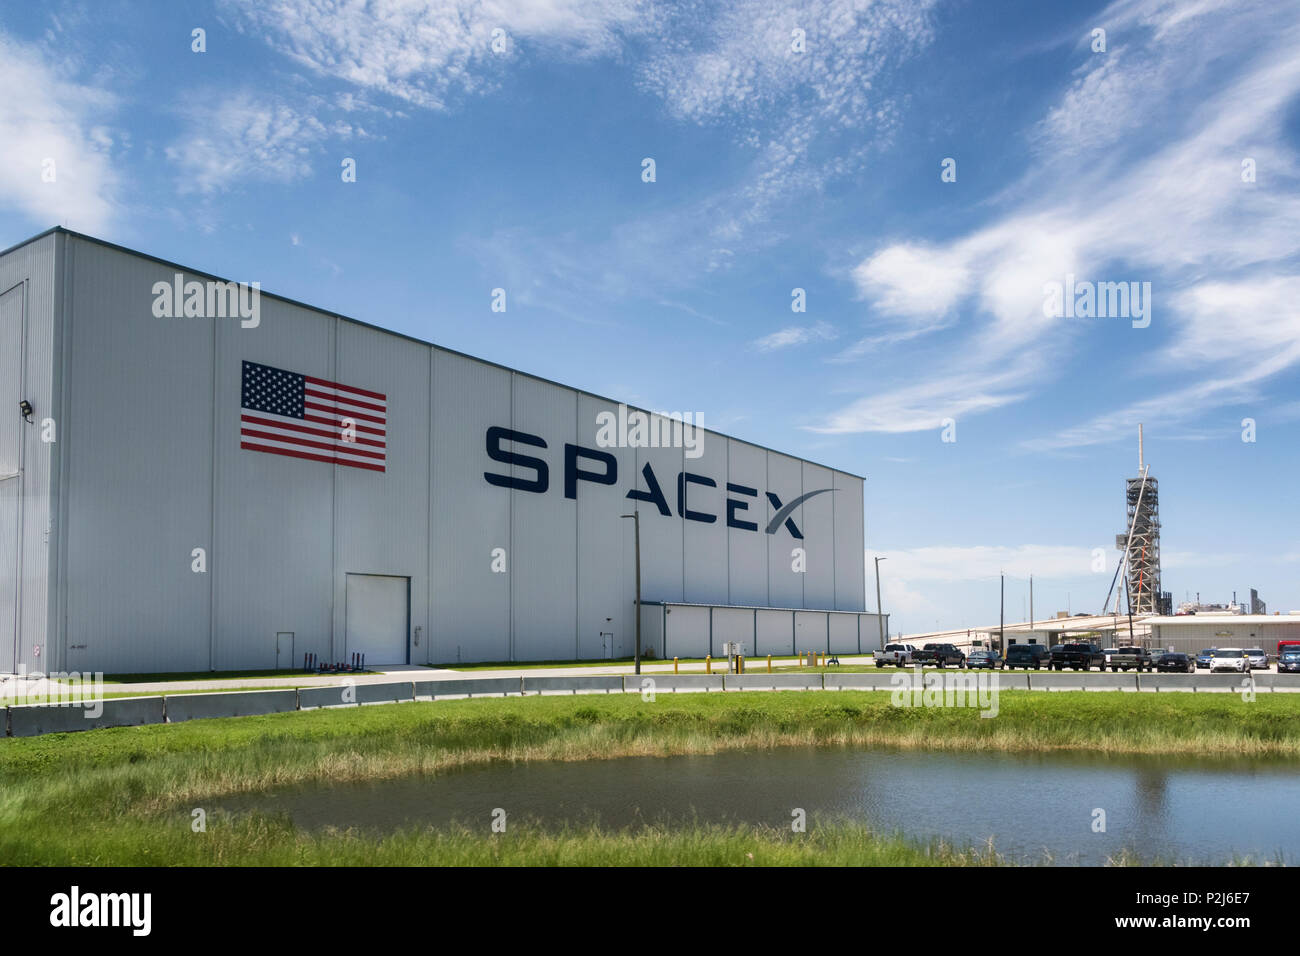 Cape Canaveral, Florida, USA - June 12, 2018: Space X launch pad in Kennedy Space Center - Stock Image